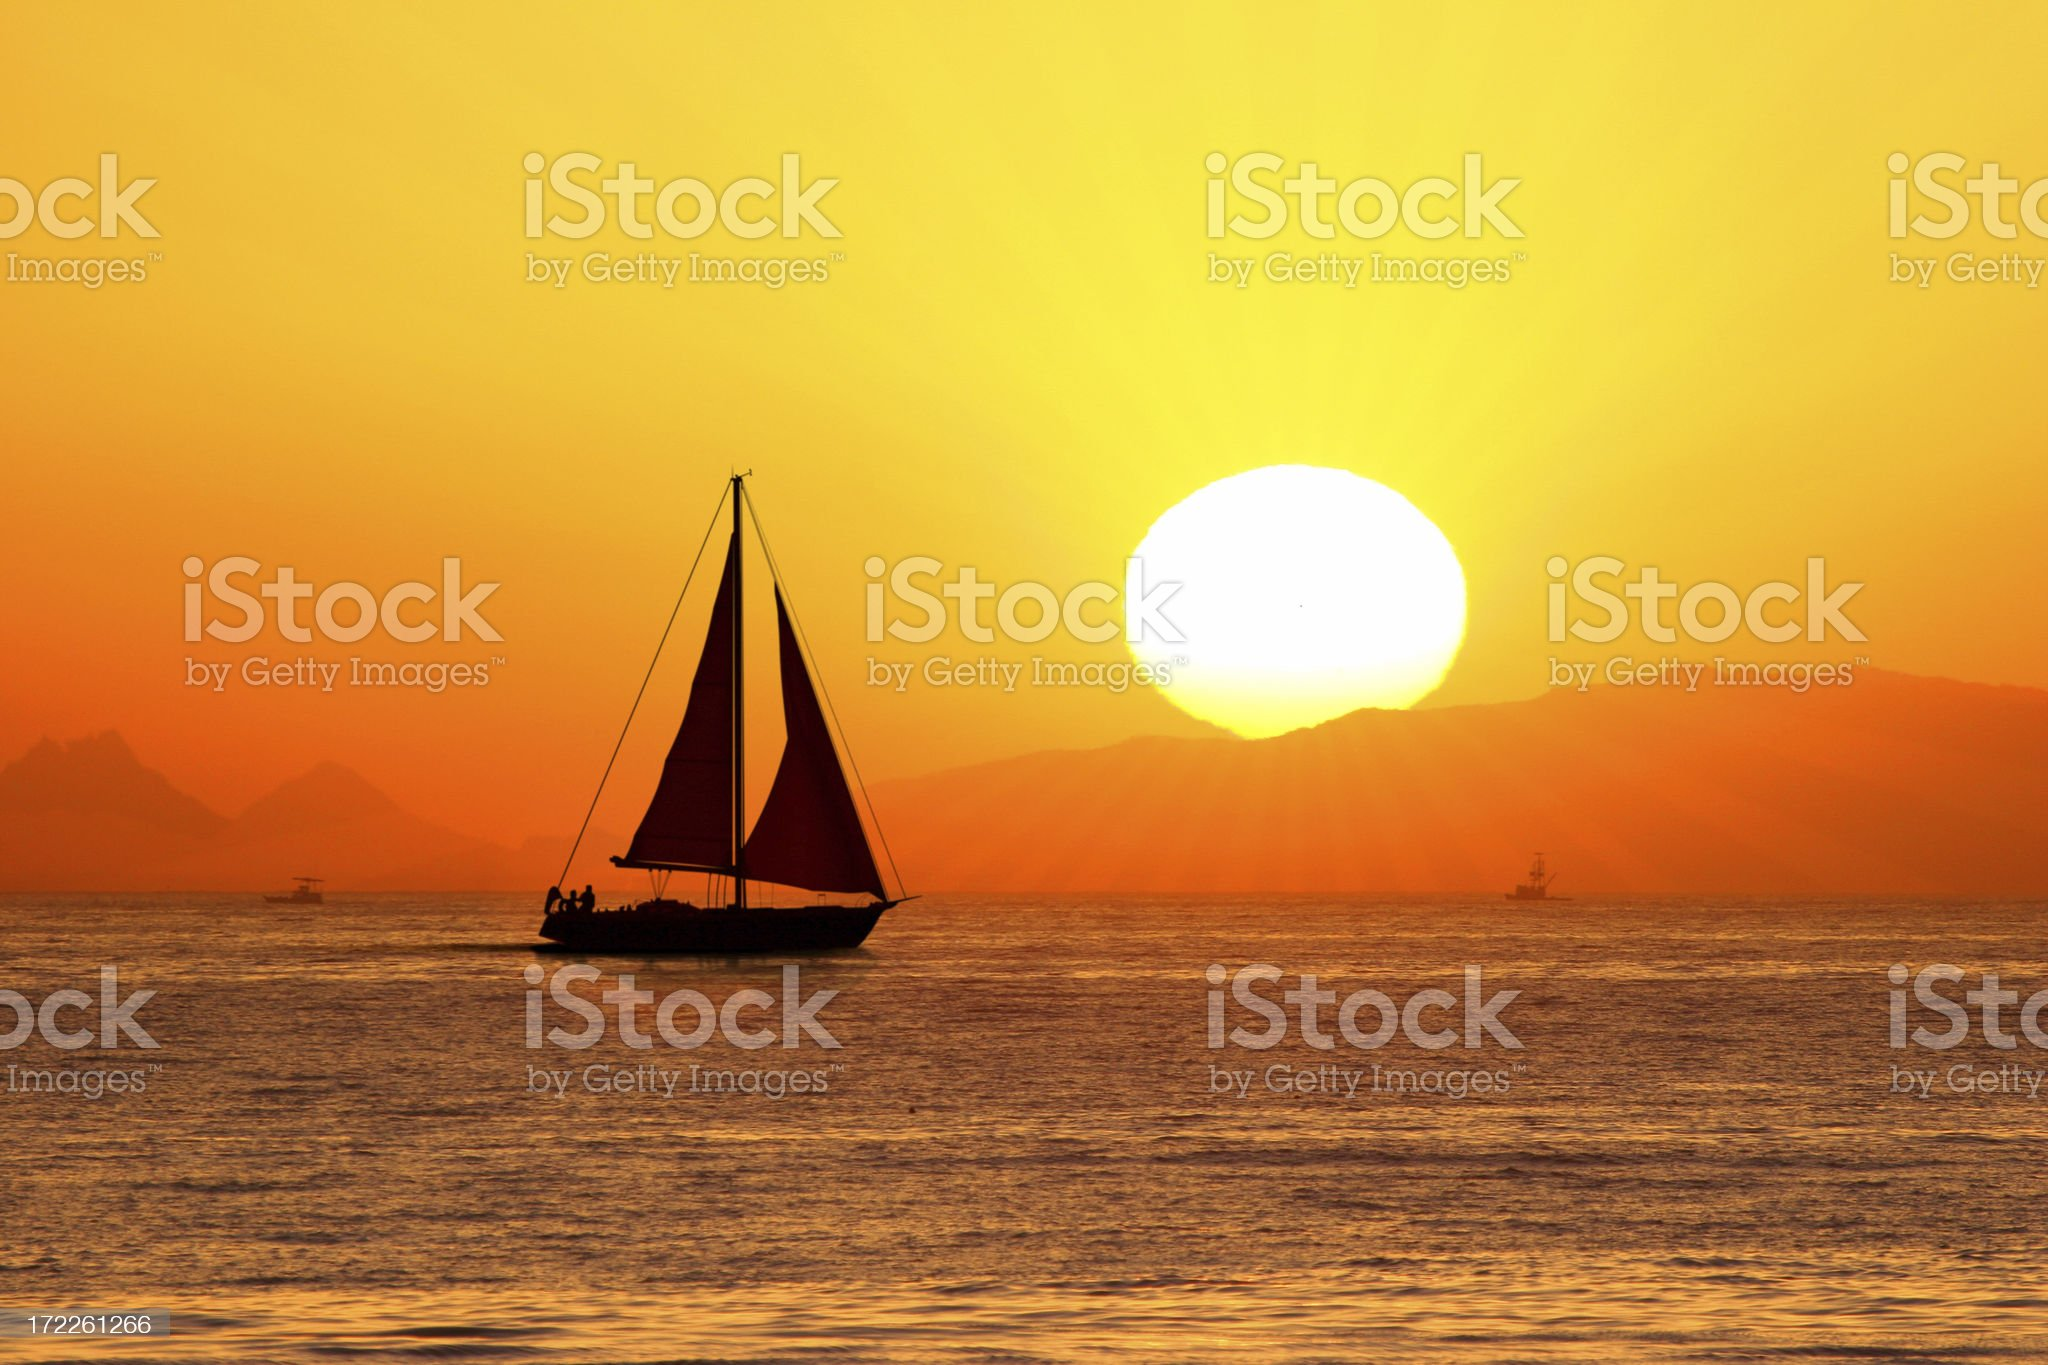 Sailing-less prominent sunrays royalty-free stock photo